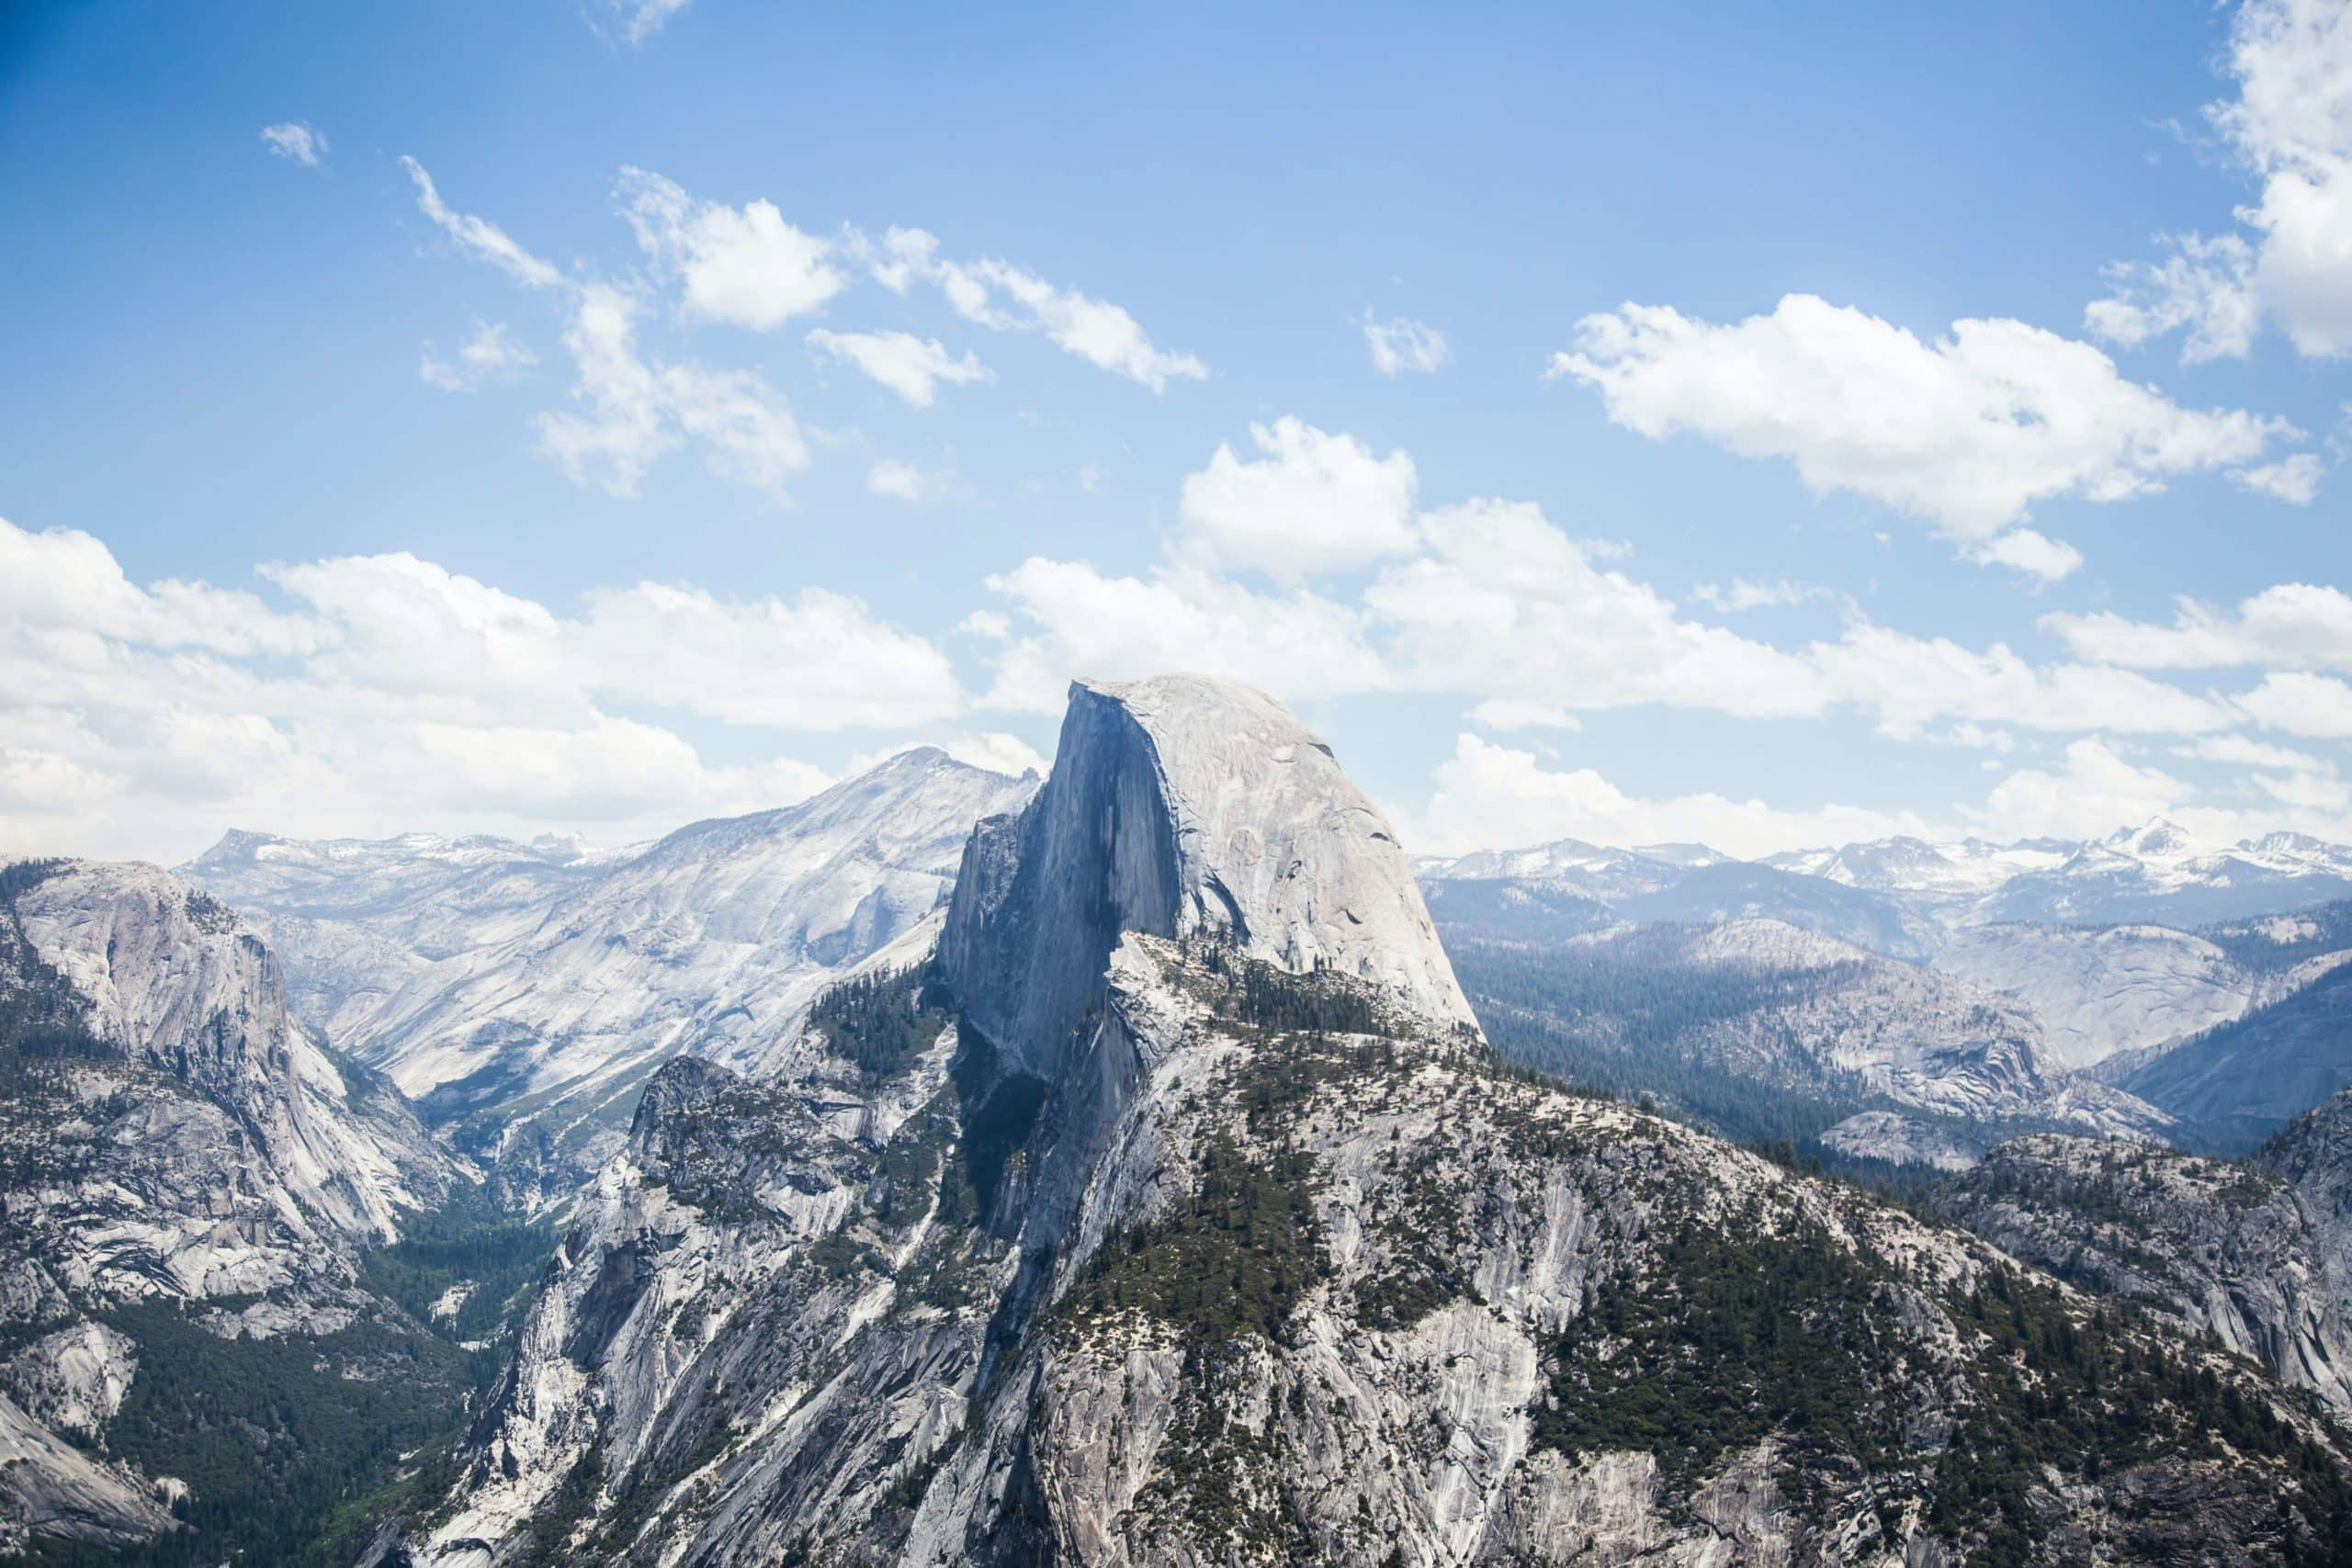 Travel bloggers reveal their favorite experiences in the world - Hiking to the Top of Half Dome in Yosemite National Park